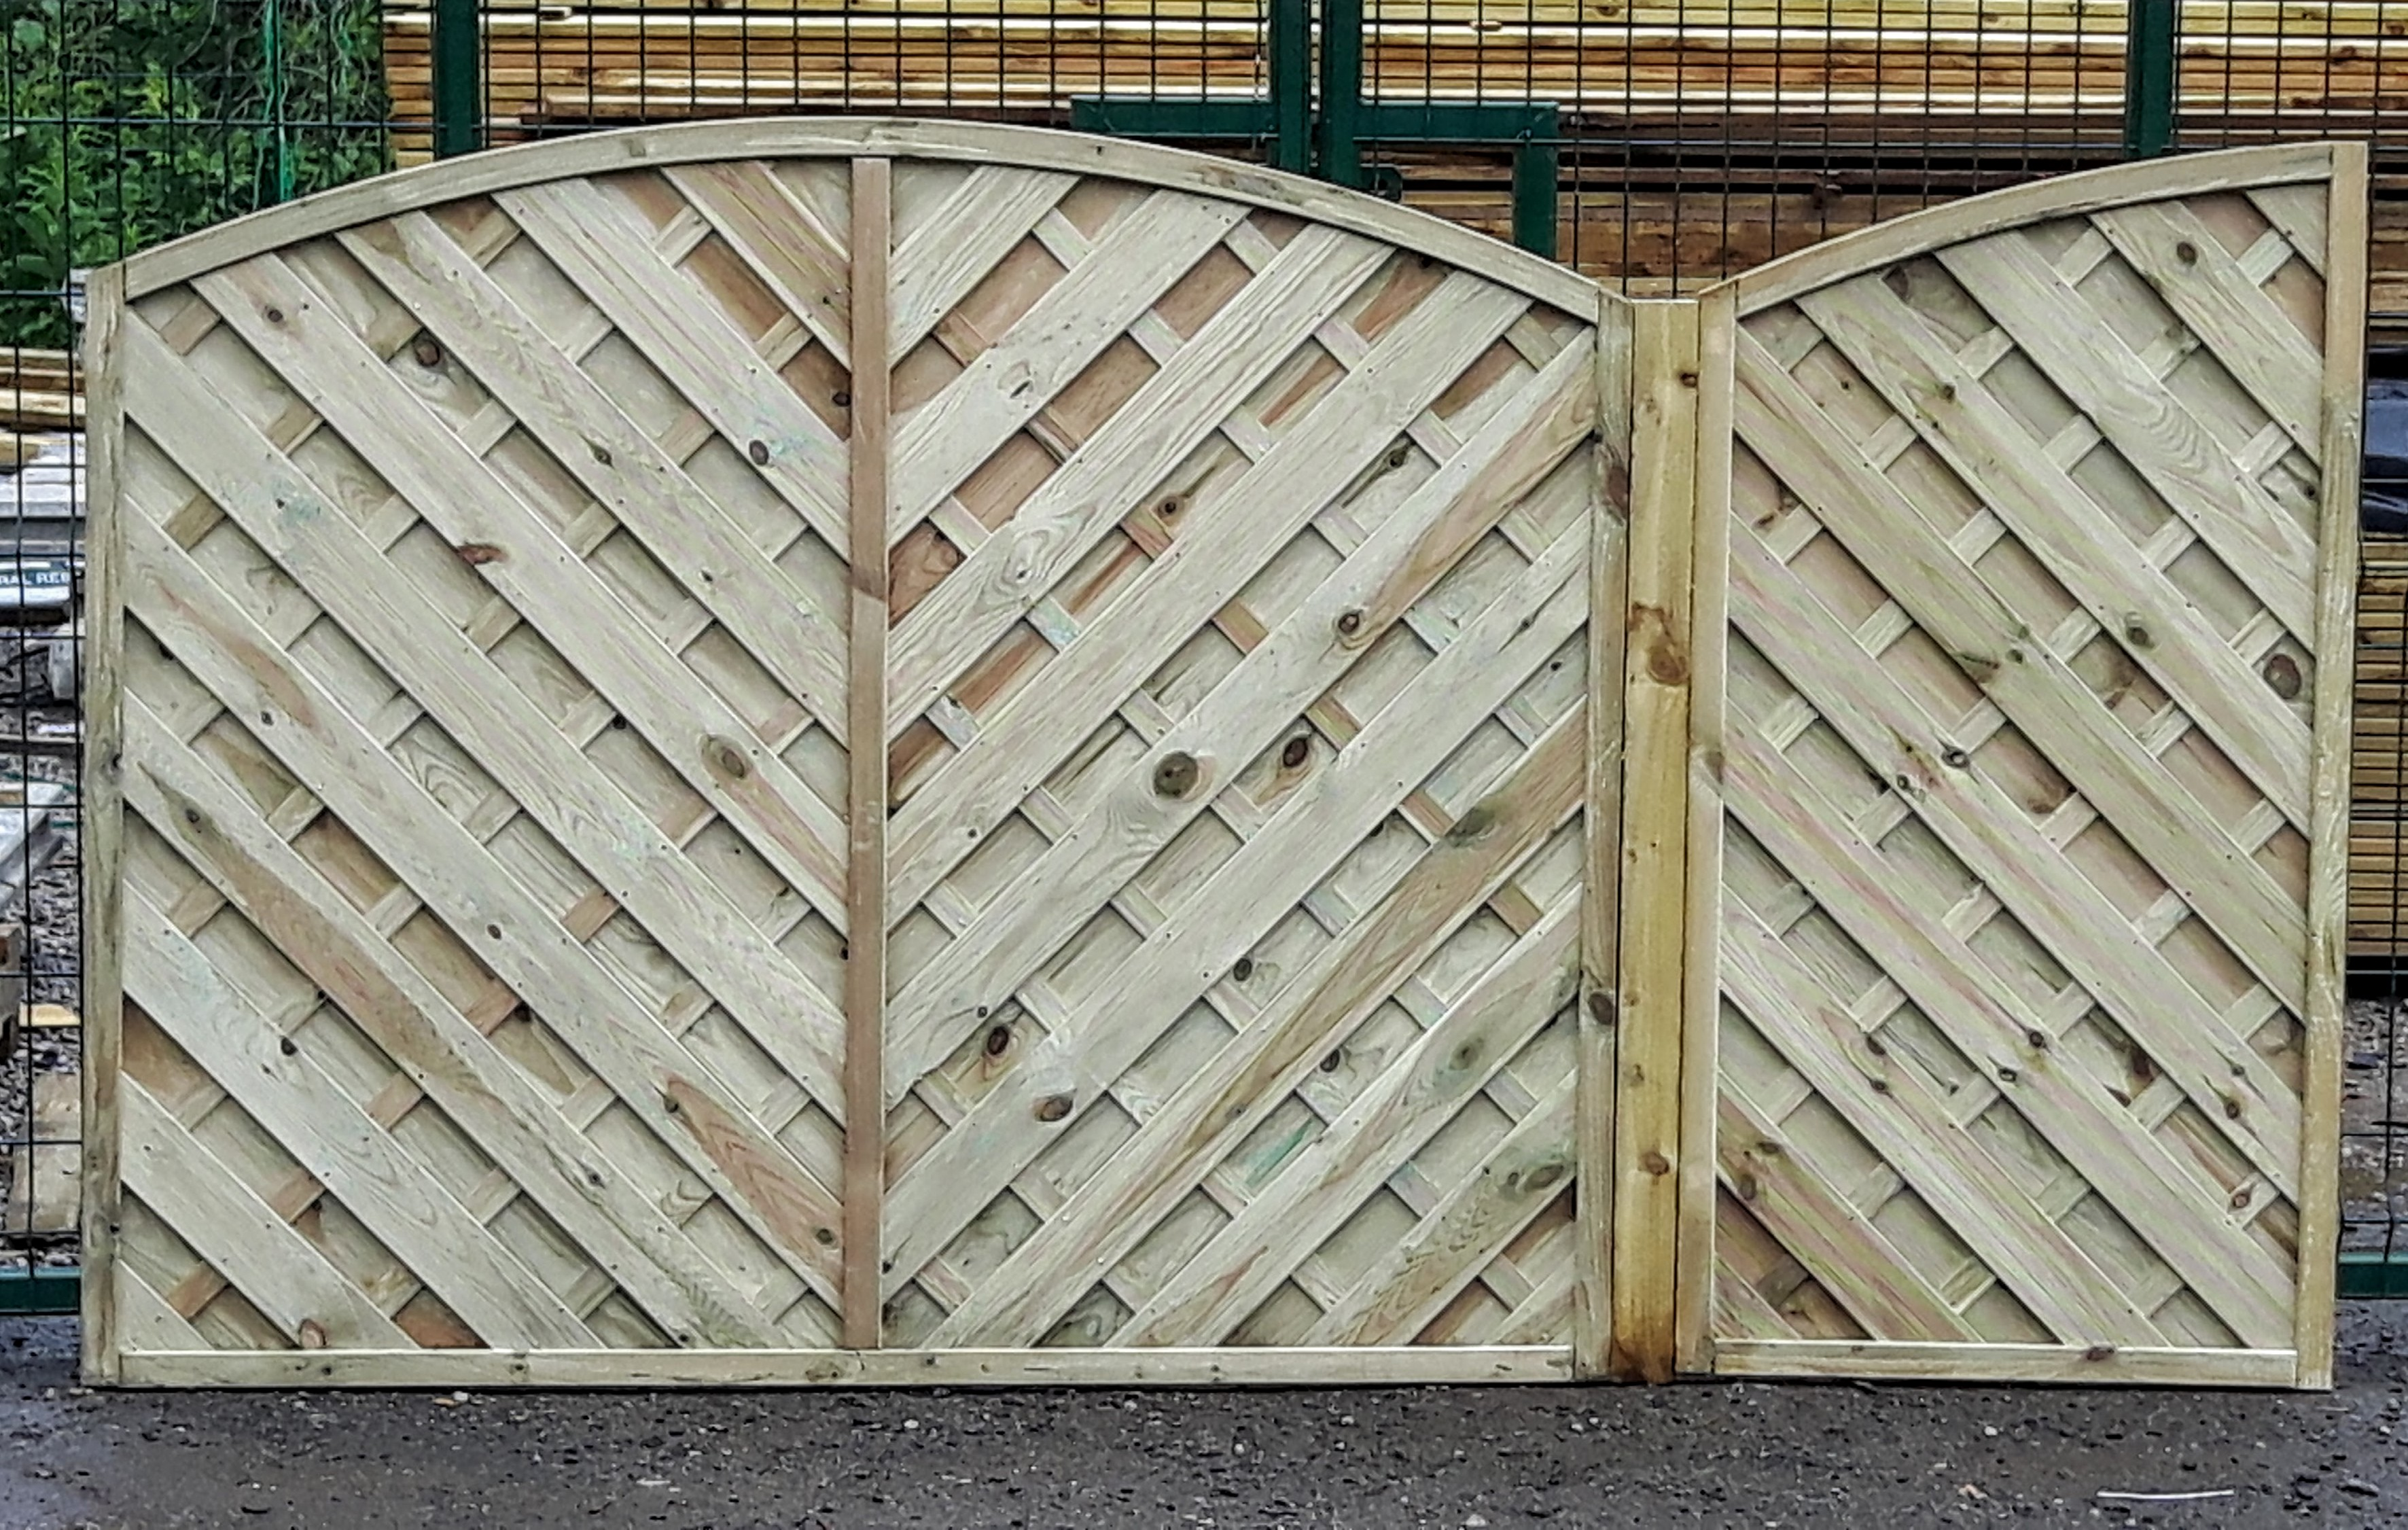 Made to measure fence panels ukdeckit view larger image baanklon Images